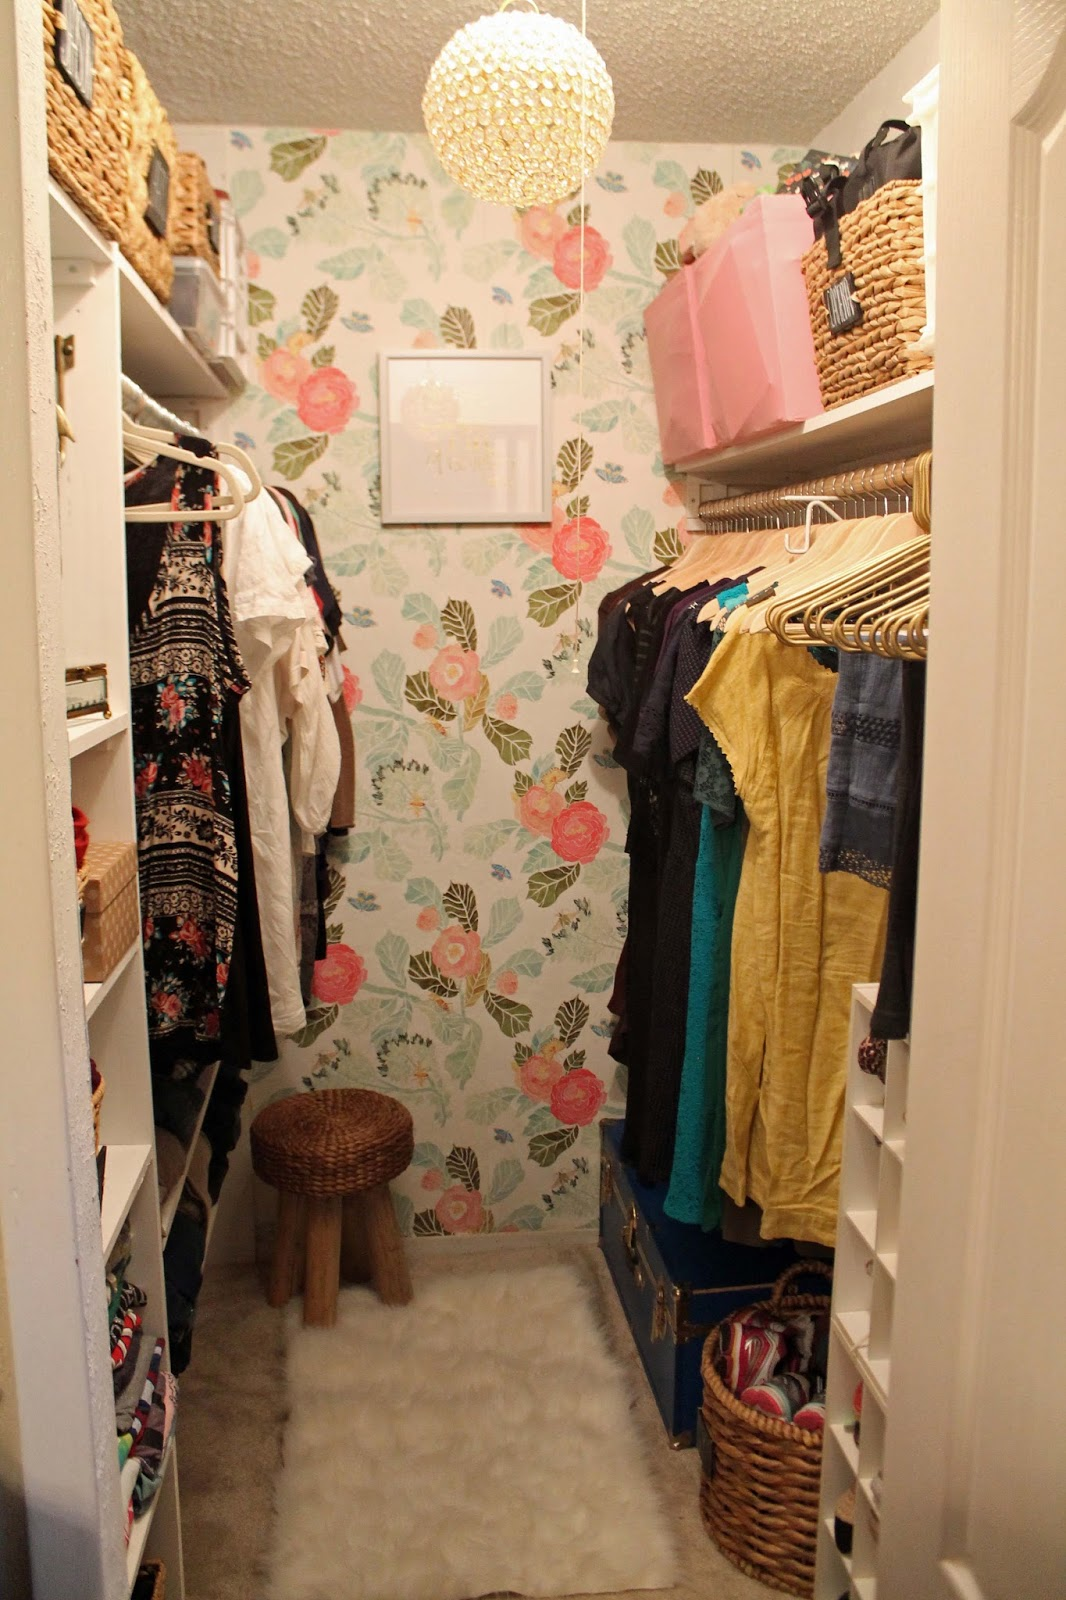 Two Summers Ago I Redid My Bedroom Here Are Those Photos Decided It Was Time To Redo Closet This Summer Had Become A Place Just Shoved Things